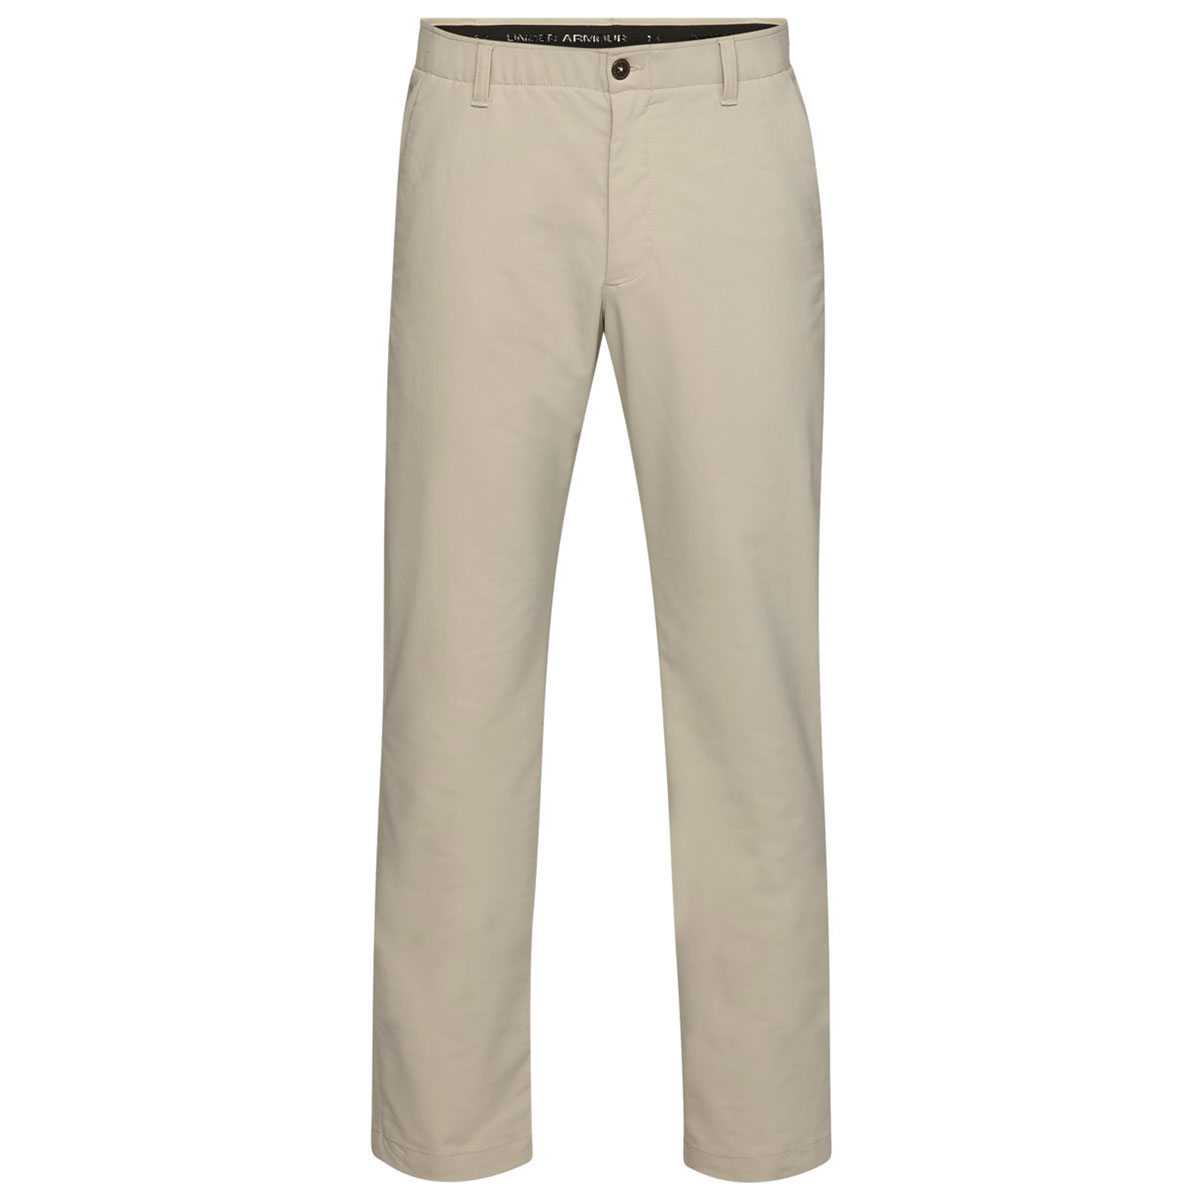 Under-Armour-Mens-2019-EU-Performance-Taper-Soft-Stretch-Golf-Trousers thumbnail 8